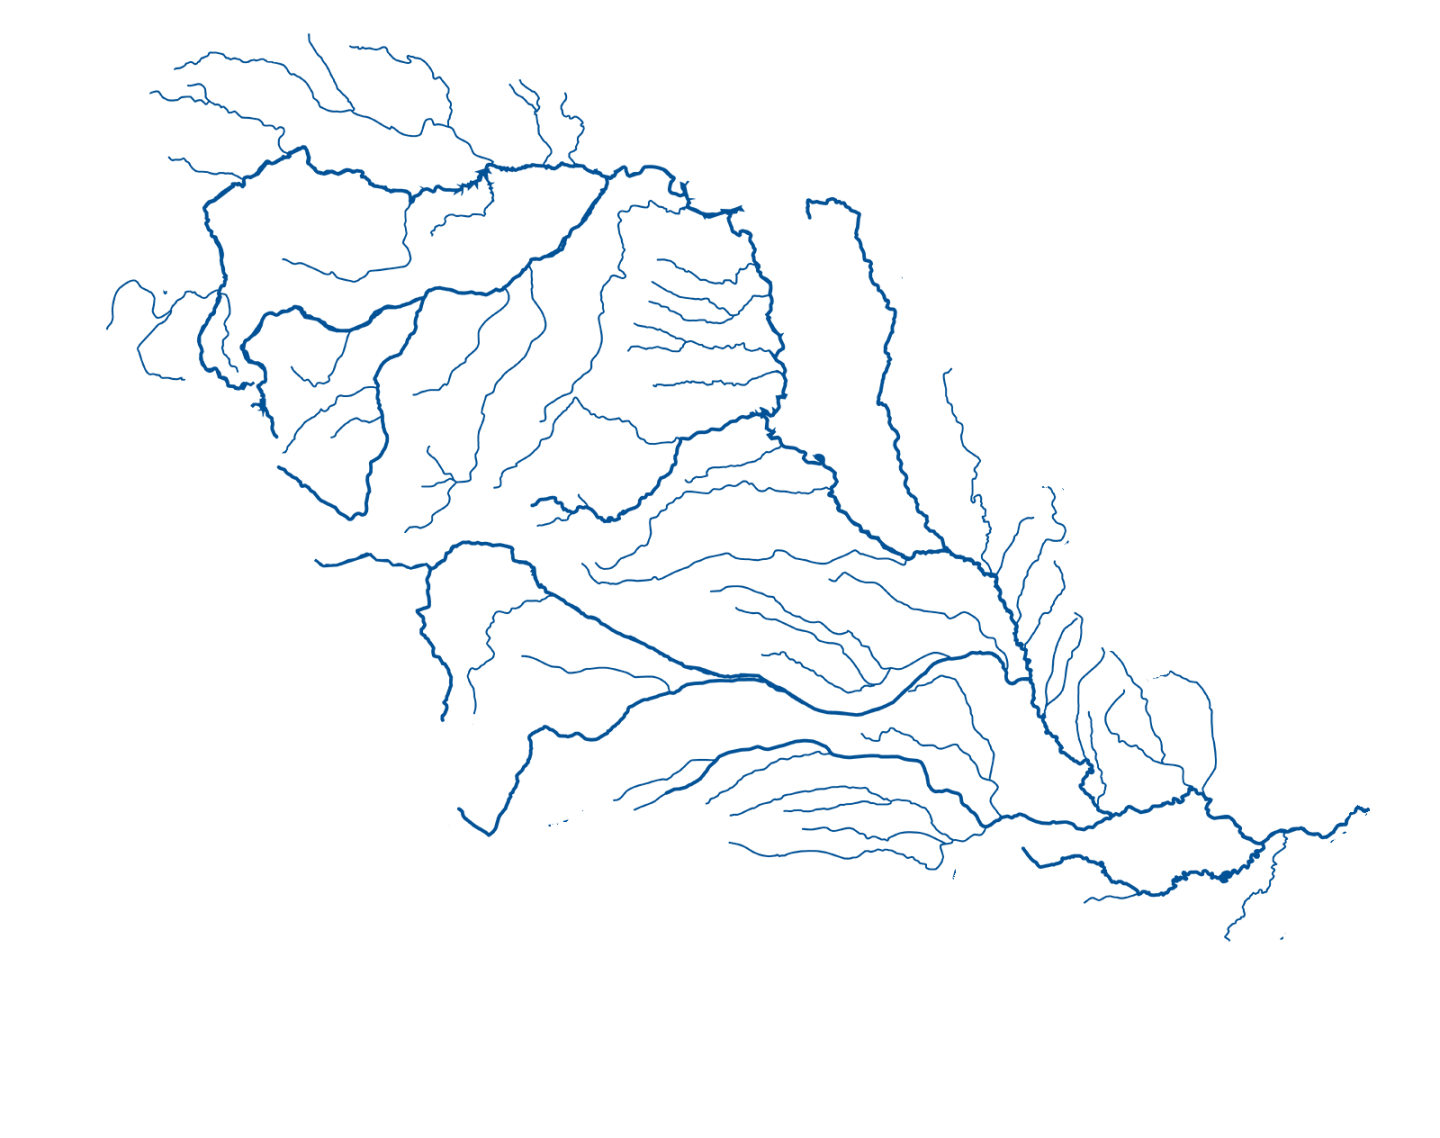 Missouri River System